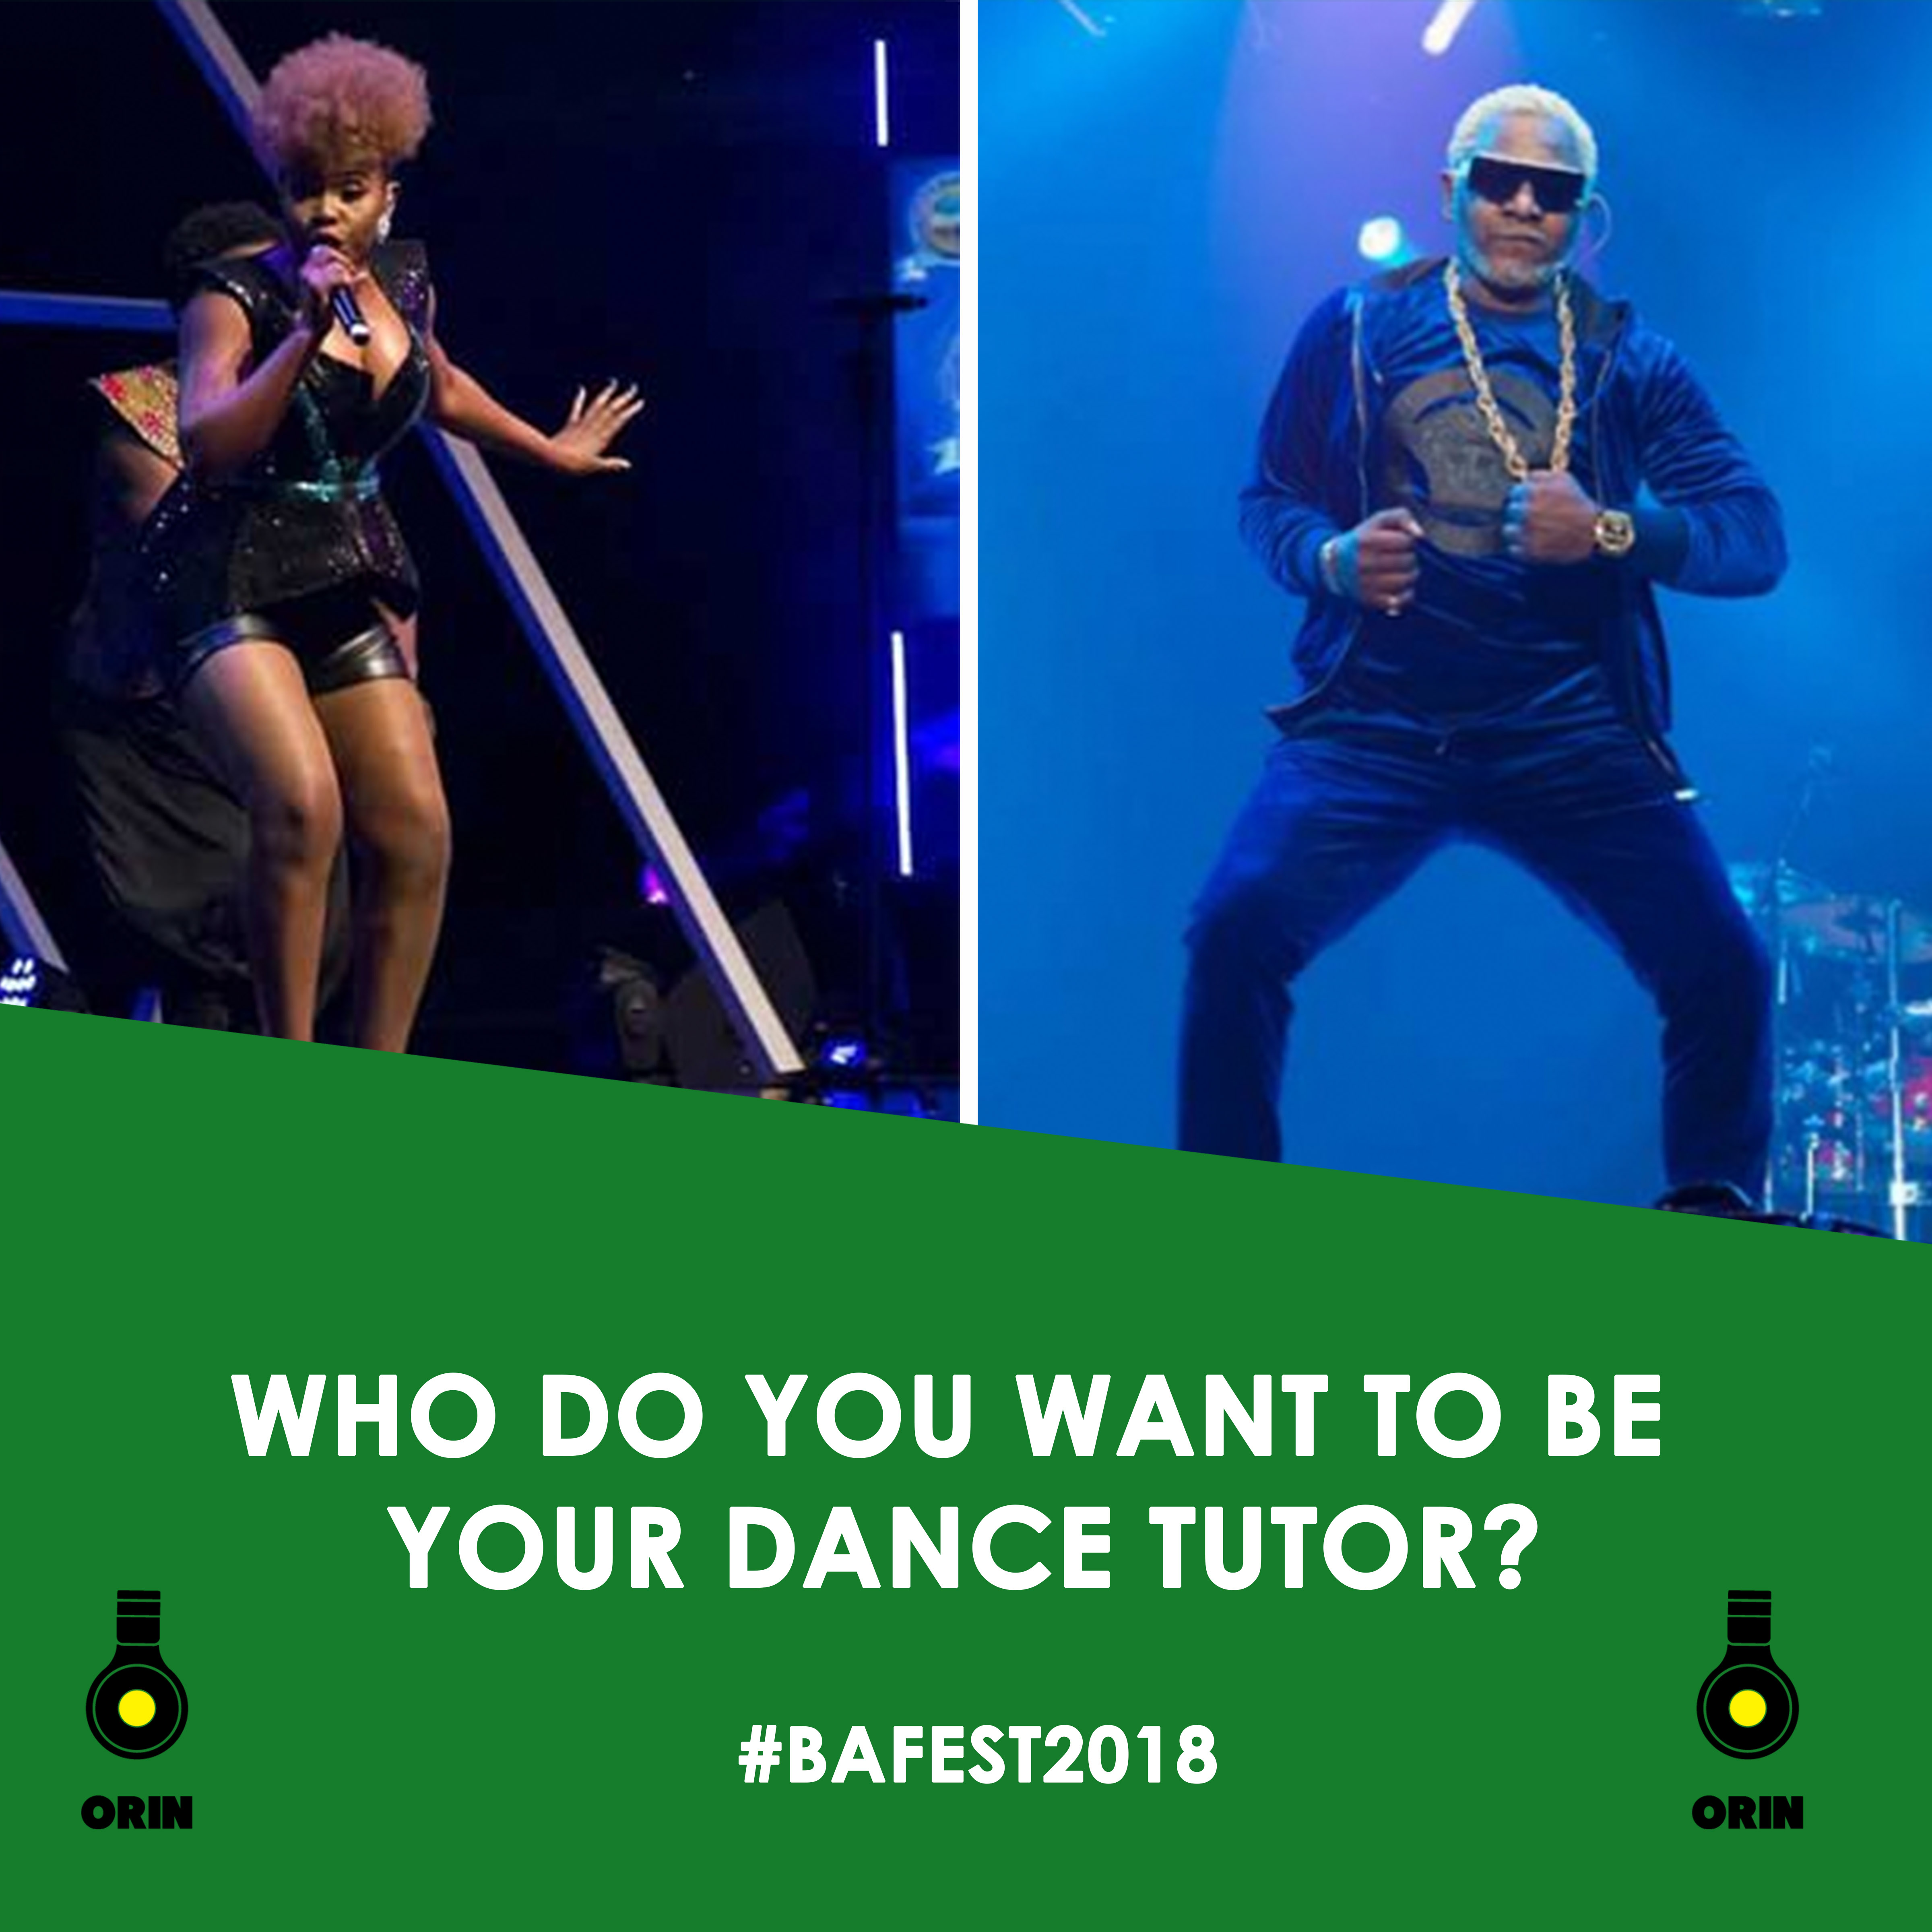 BAFEST 2018: Choose Between Yemi Alade And Awilo Longomba To Be Your Dance Tutor